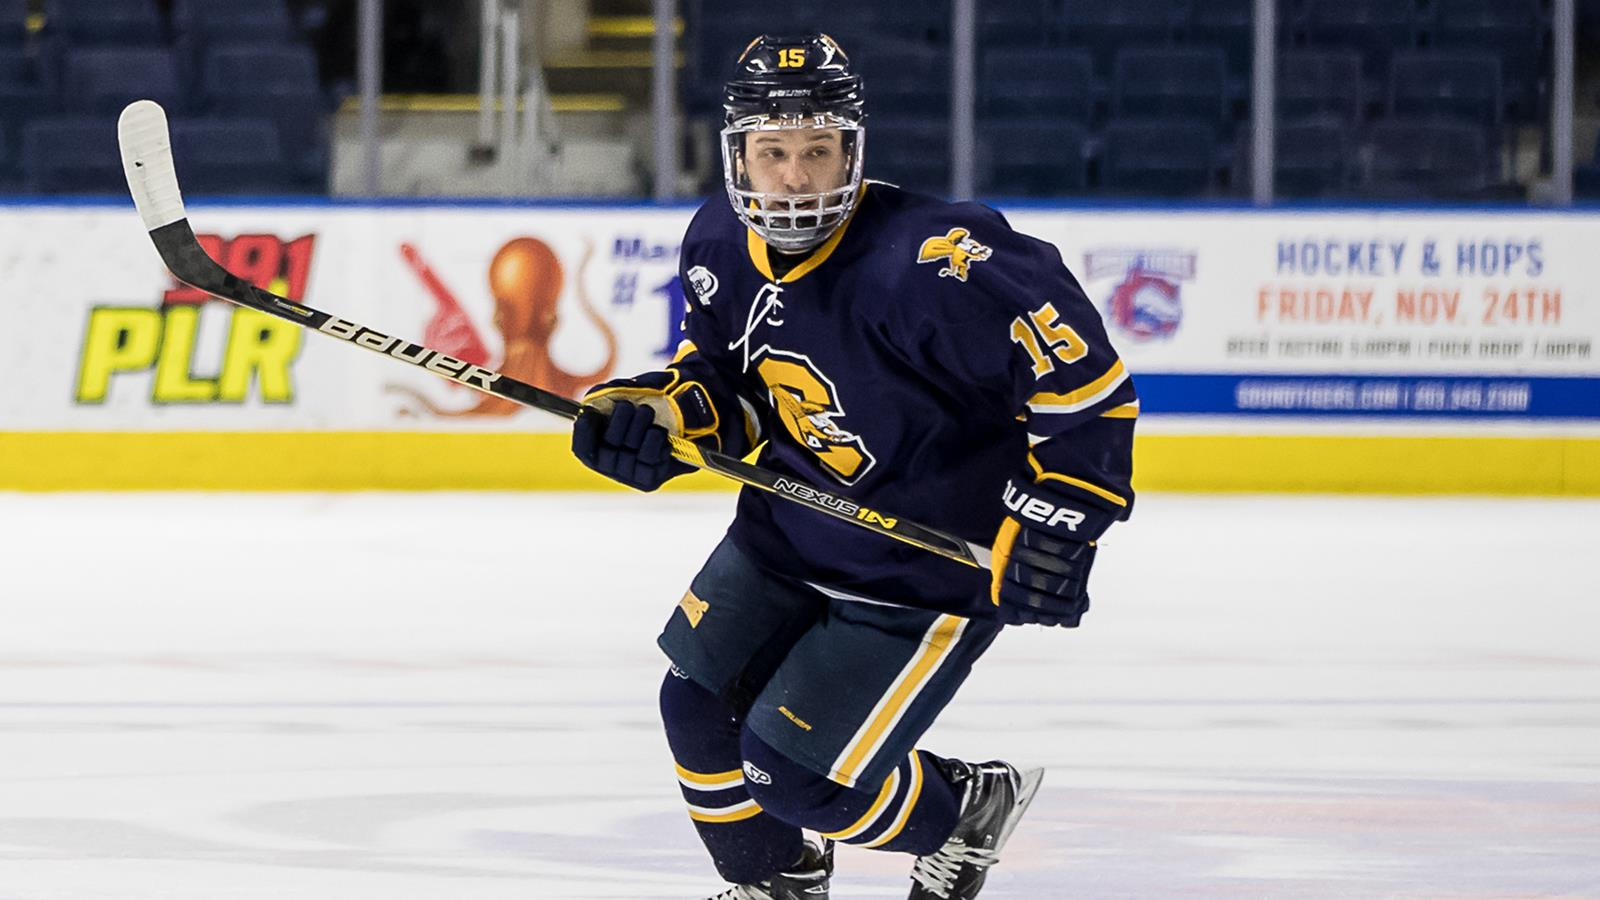 new arrival 68ed5 5cf66 Hockey Cruises to 6-1 victory over AIC - Canisius College ...